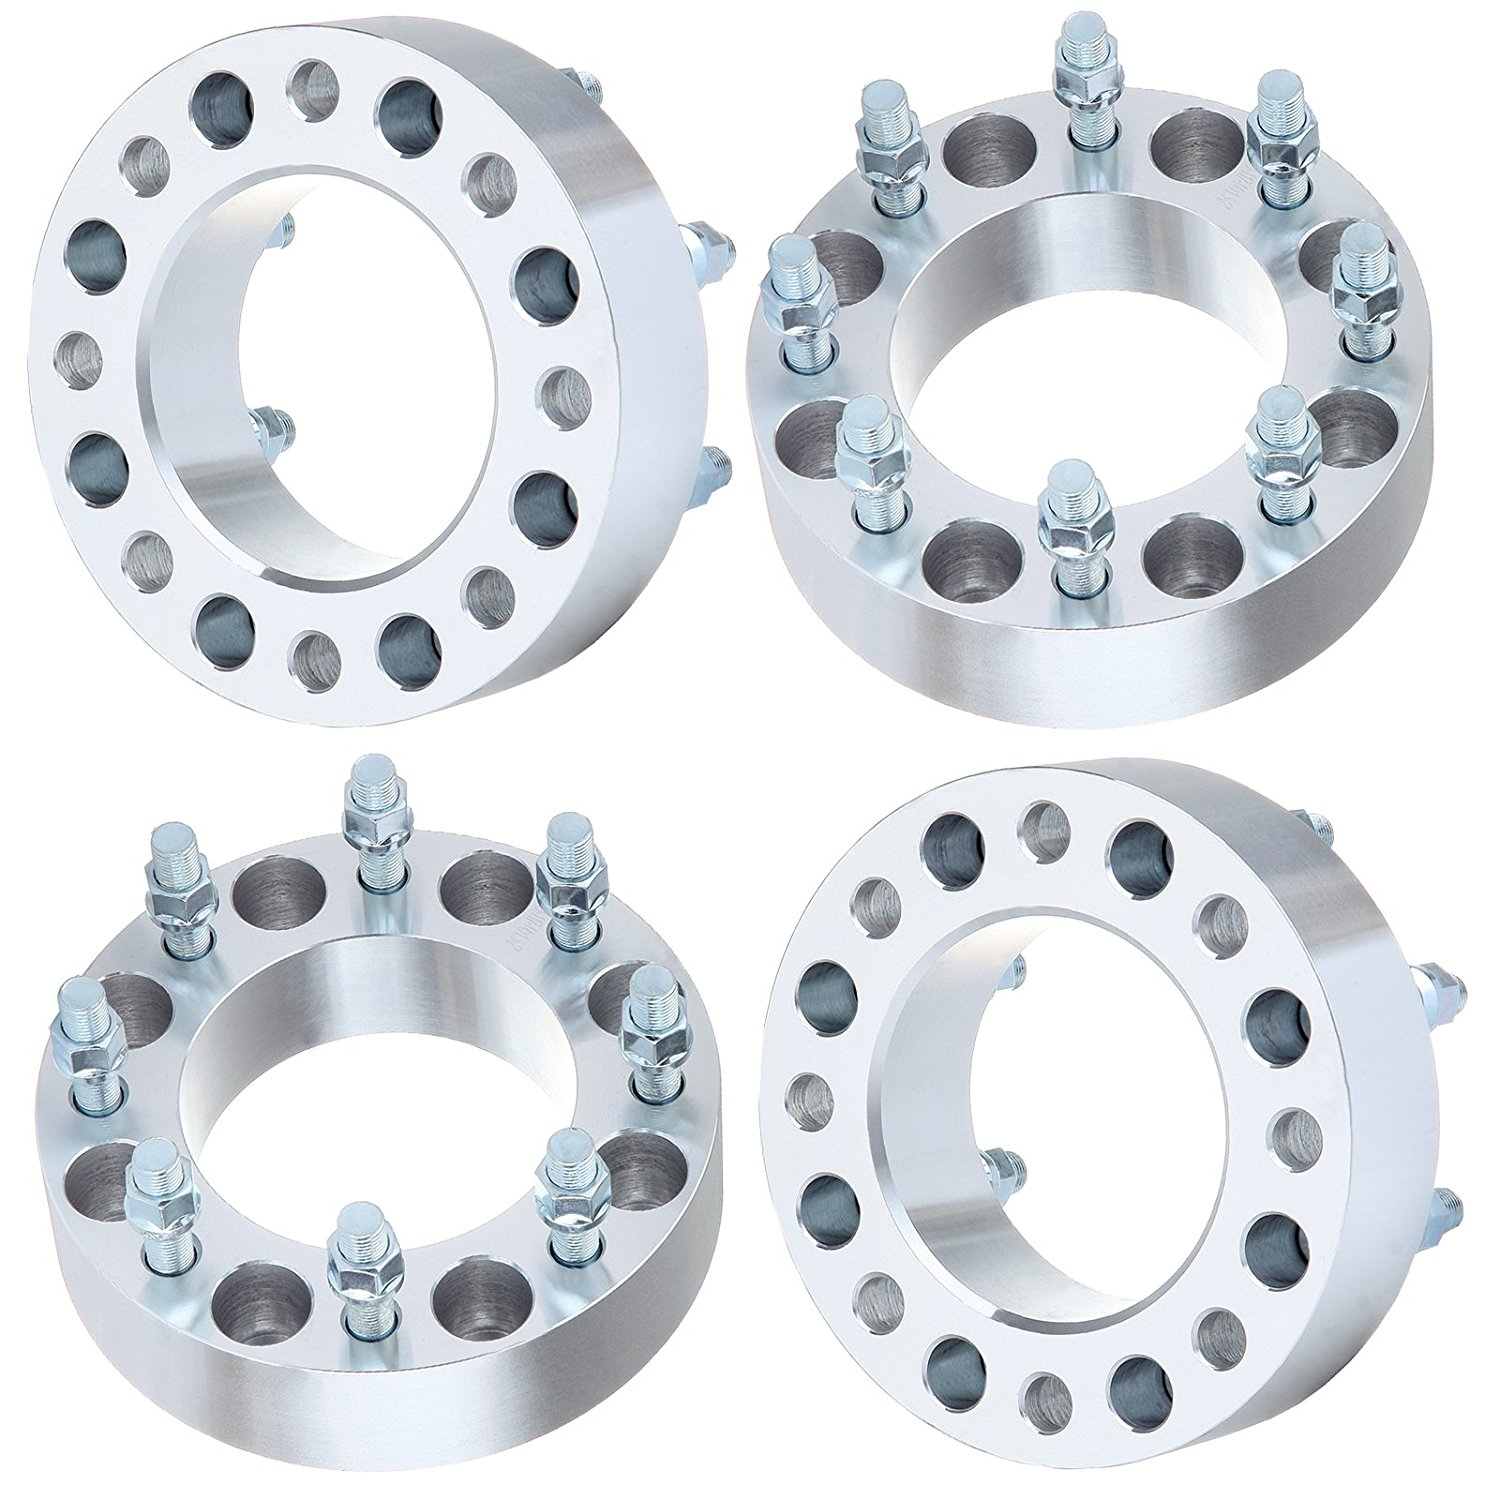 "Wheel Spacer for Chevy,ECCPP 2"" 4PCS 8x6.5 117mm Wheel Spacers Fit GMC Savana/Sierra/C3500 Chevrolet C2500 Chevrolet Avalanche with 14x1.5 Studs"